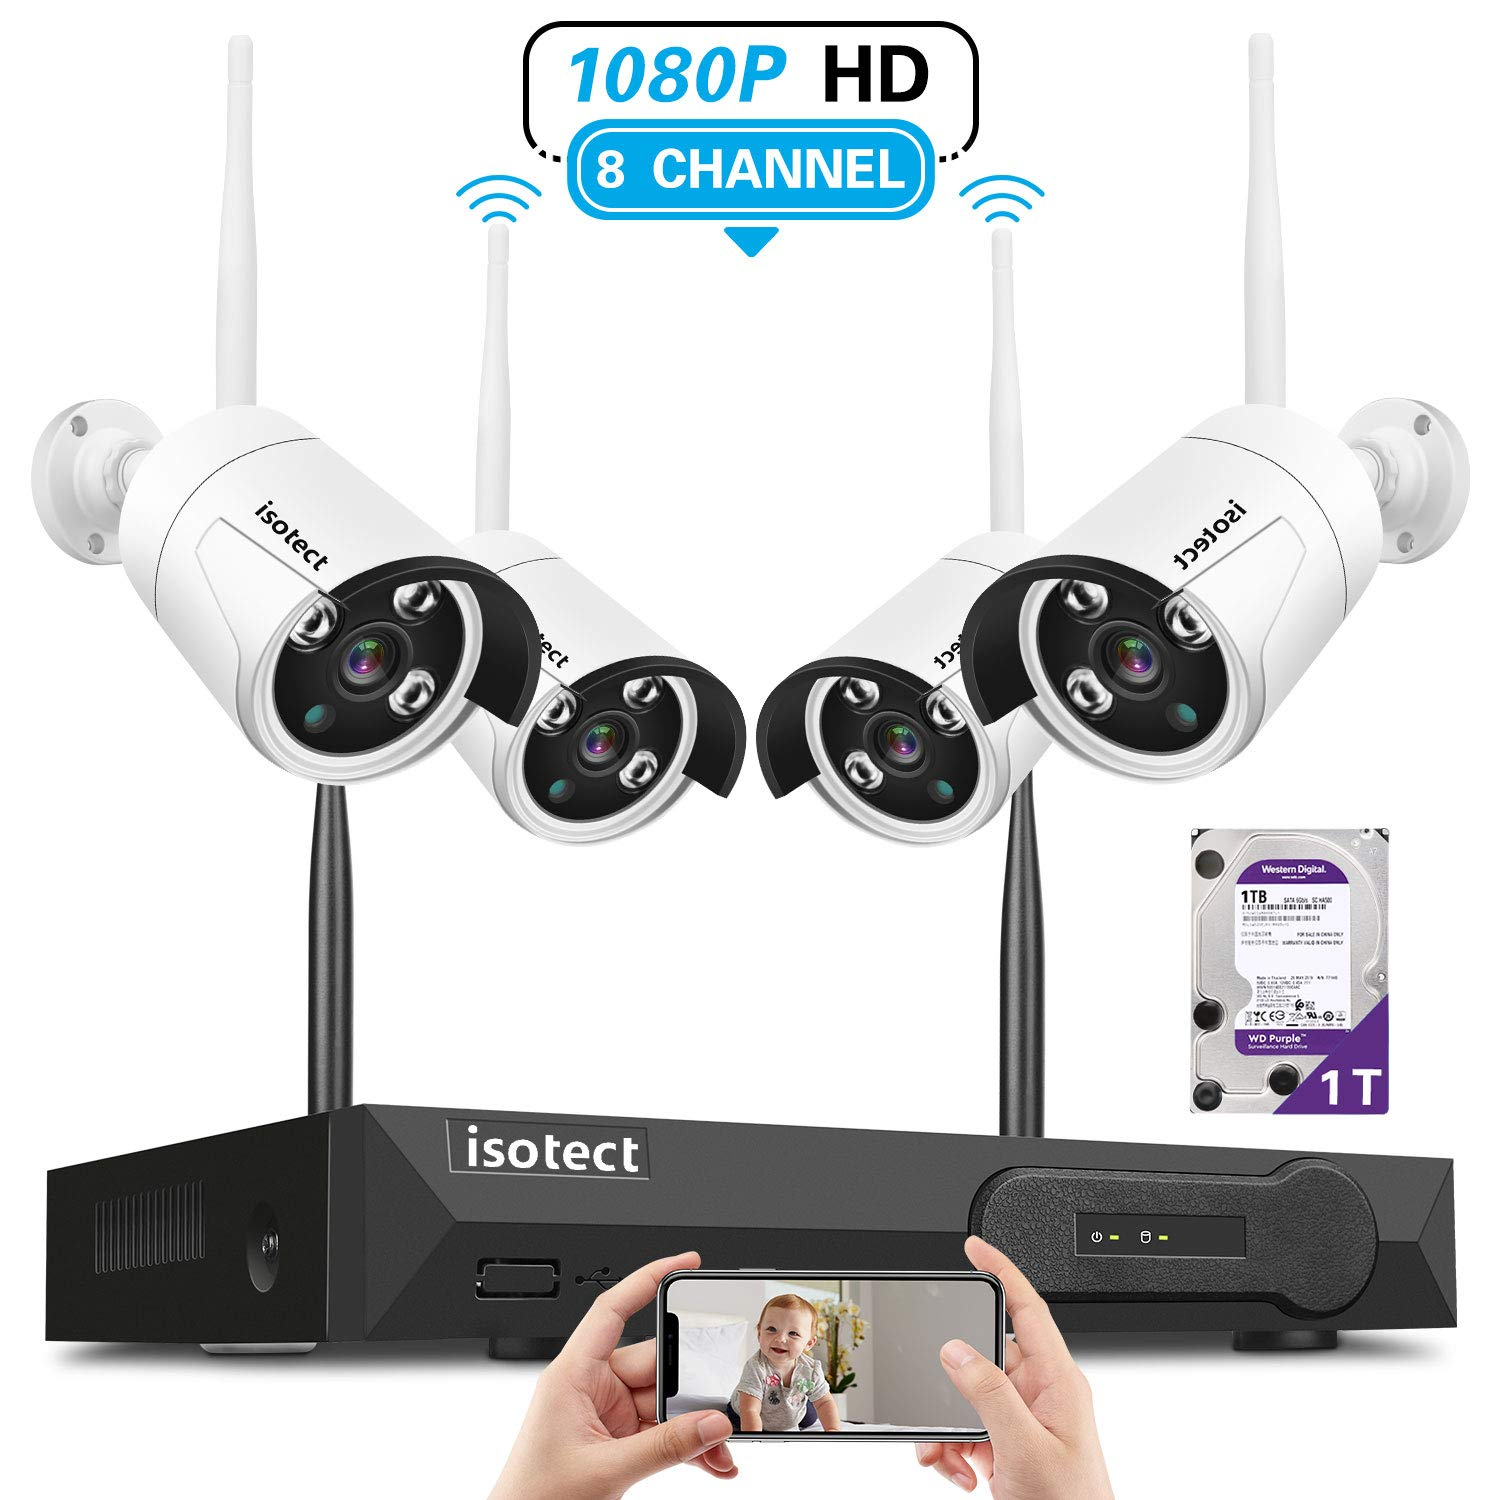 2019 Newest Wireless Security Camera System, Isotect Full HD 8CH 1080P WiFi NVR Kit with 4pcs 1080P Indoor Outdoor Wireless Video IP Cameras, Remote Playback, 65ft Night Vision, 1TB Hard Drive